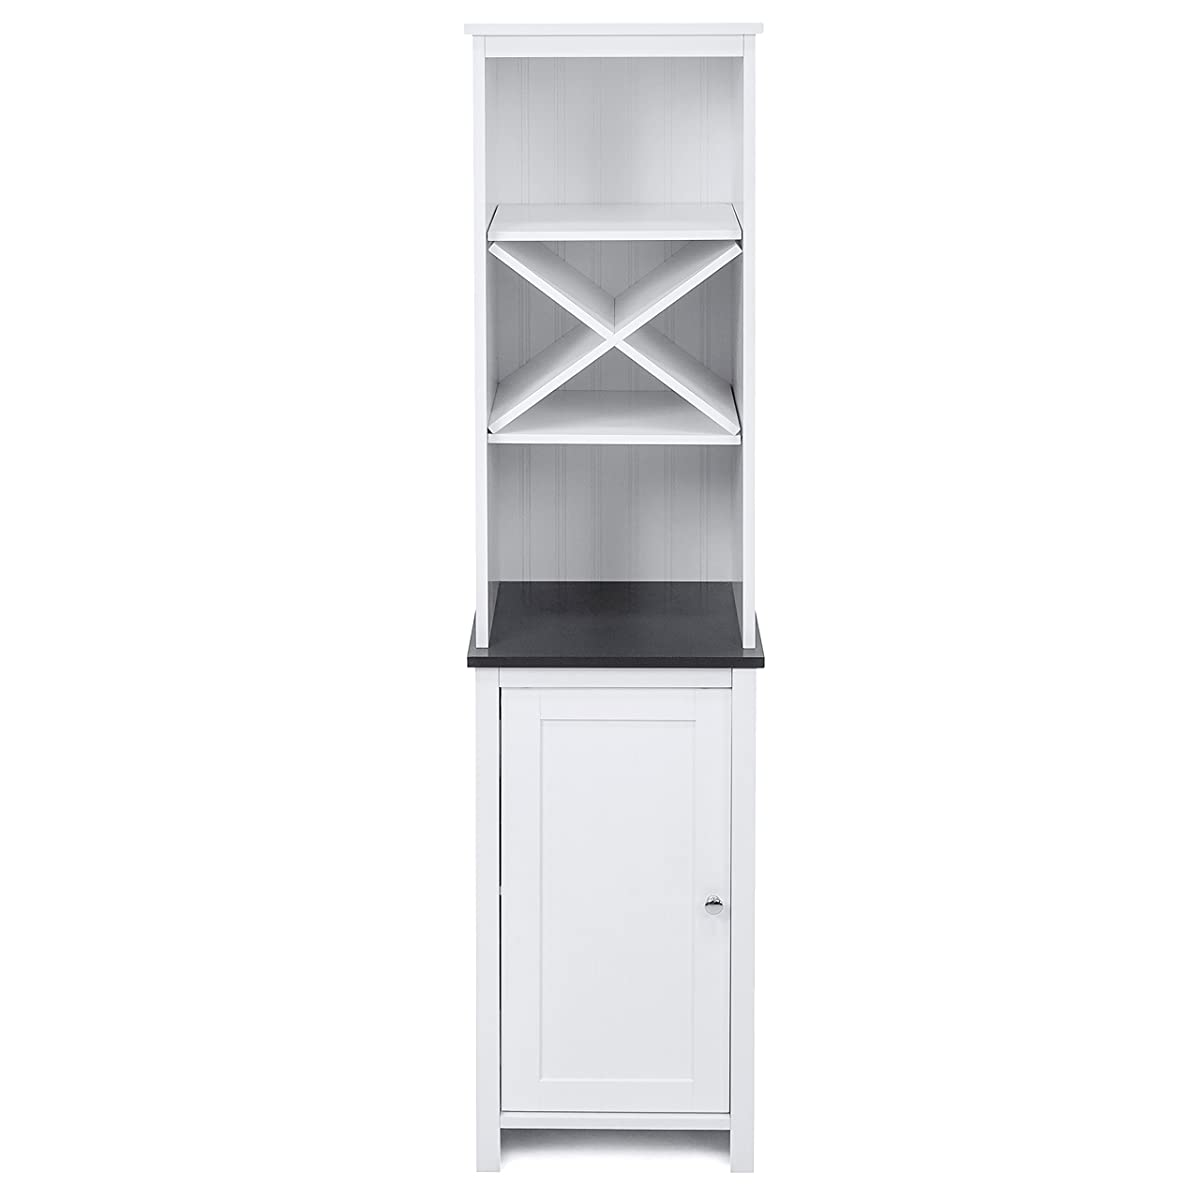 Best Choice Products Wooden Bathroom Tower Storage Cabinet w/ Adjustable Shelves - White